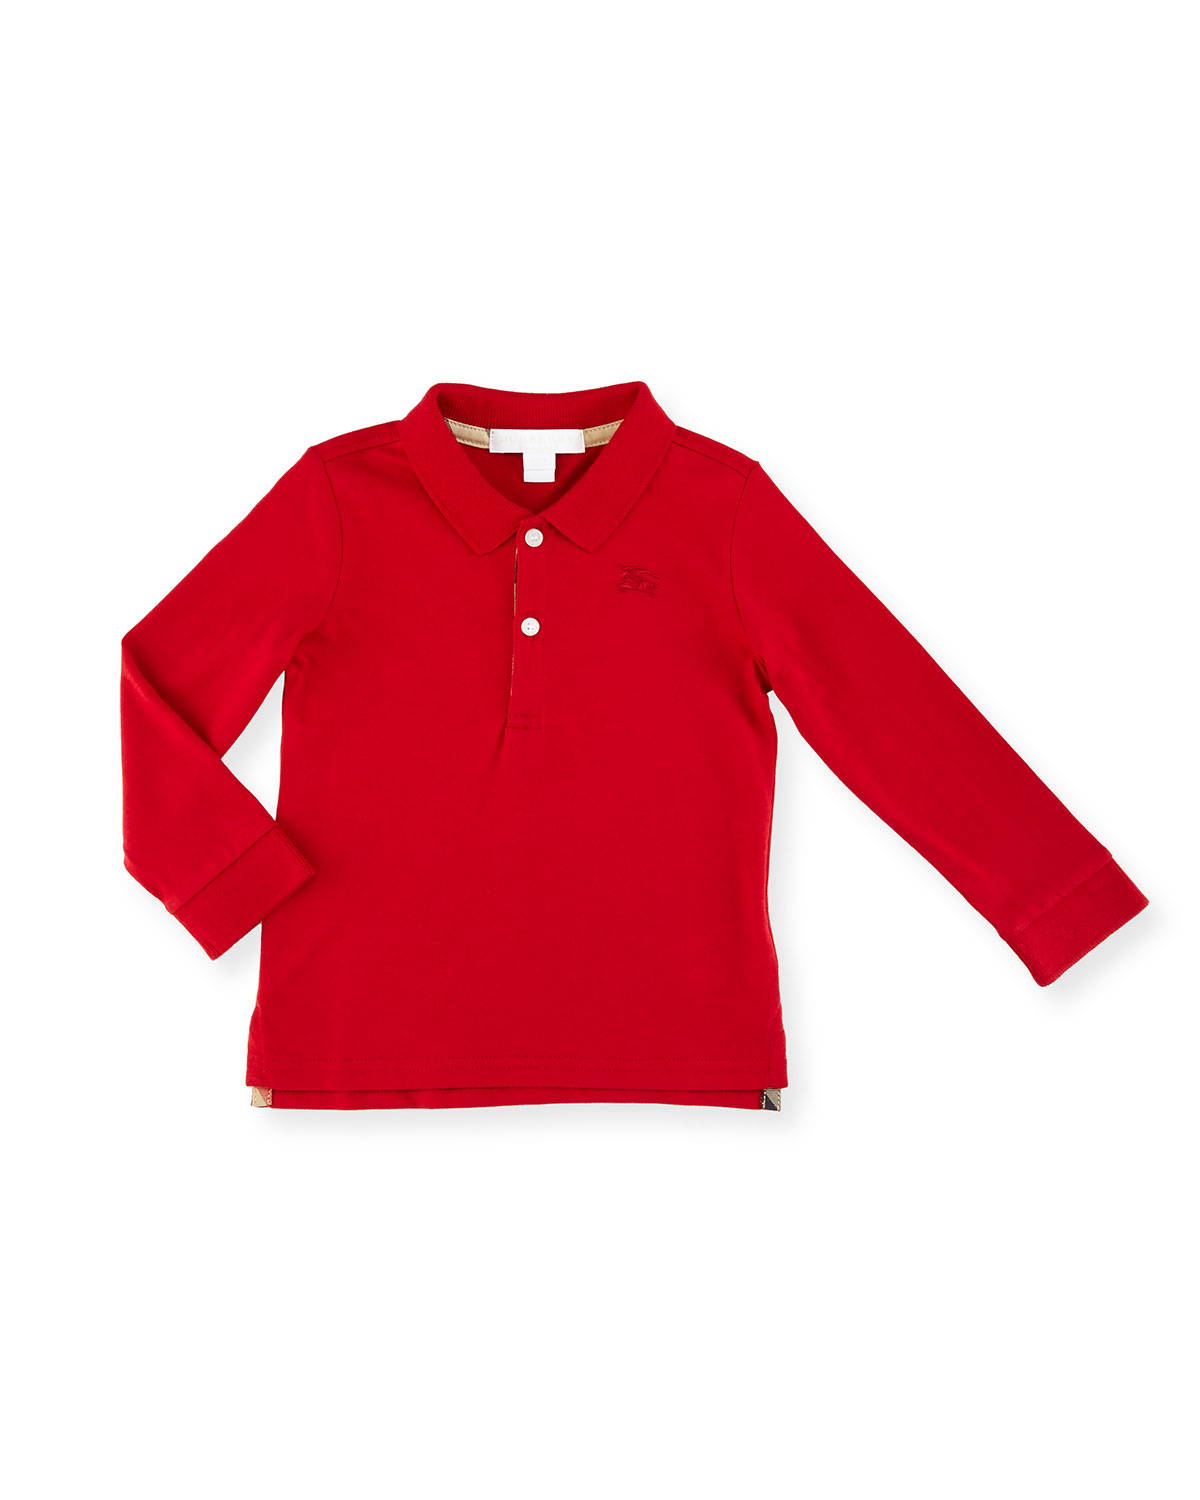 Palmer Long-Sleeve Pique Cotton Polo Shirt, Military Red, Size 6M-3Y